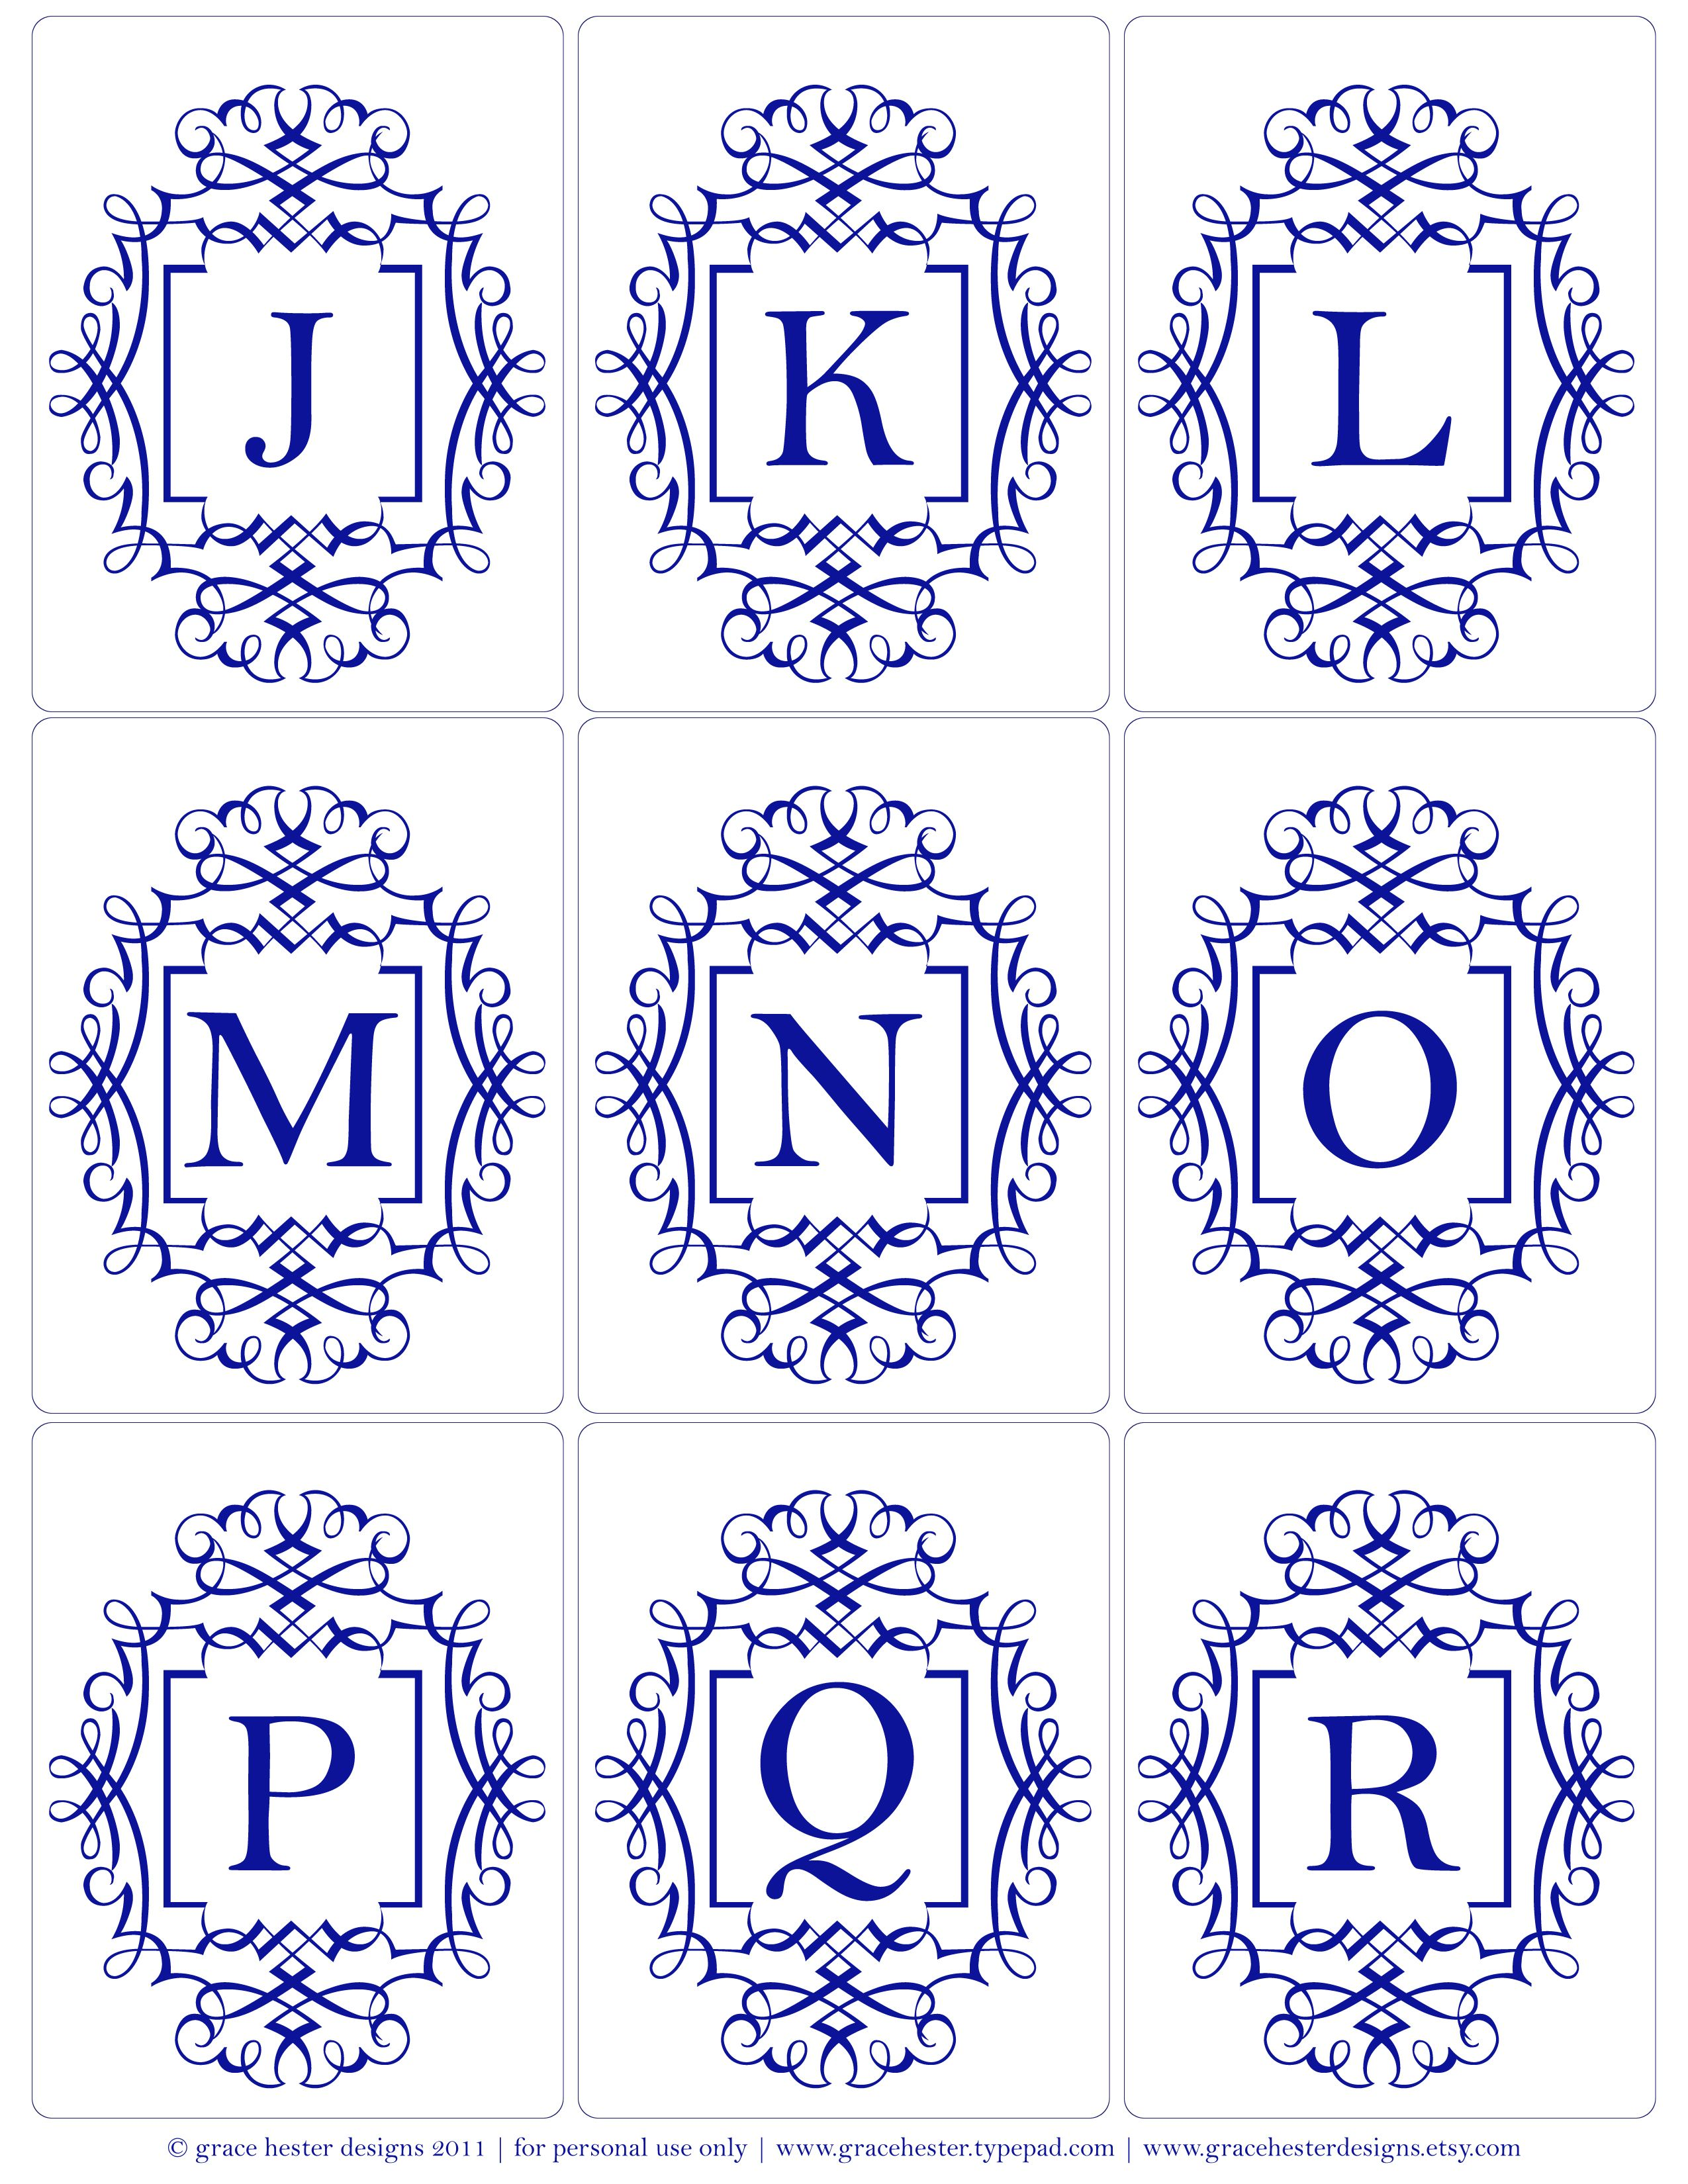 c840210a5e9d8aaf42f8c52497fa5c76 Quilling Paper Letters Free Printable Templates on dear santa, large alphabet, alphabet banner, alphabet capital, bold alphabet,